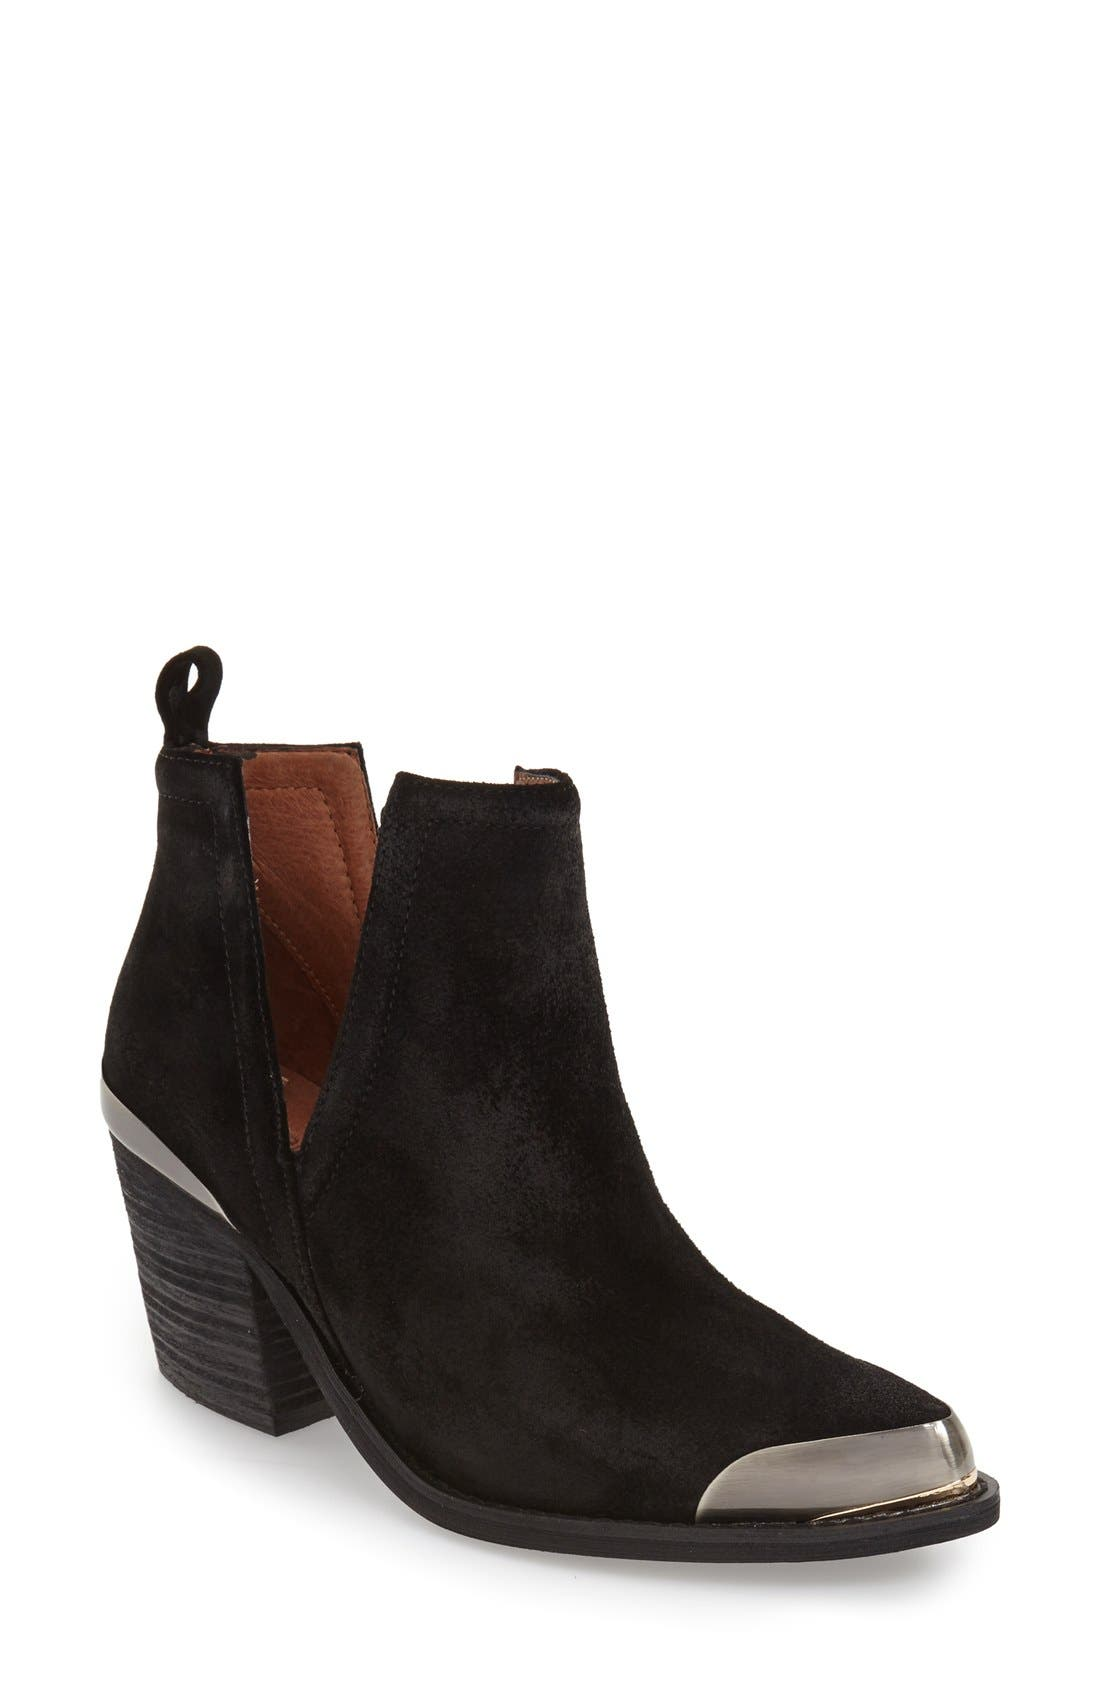 Alternate Image 1 Selected - Jeffrey Campbell 'Optimum' Split Shaft Bootie (Women)